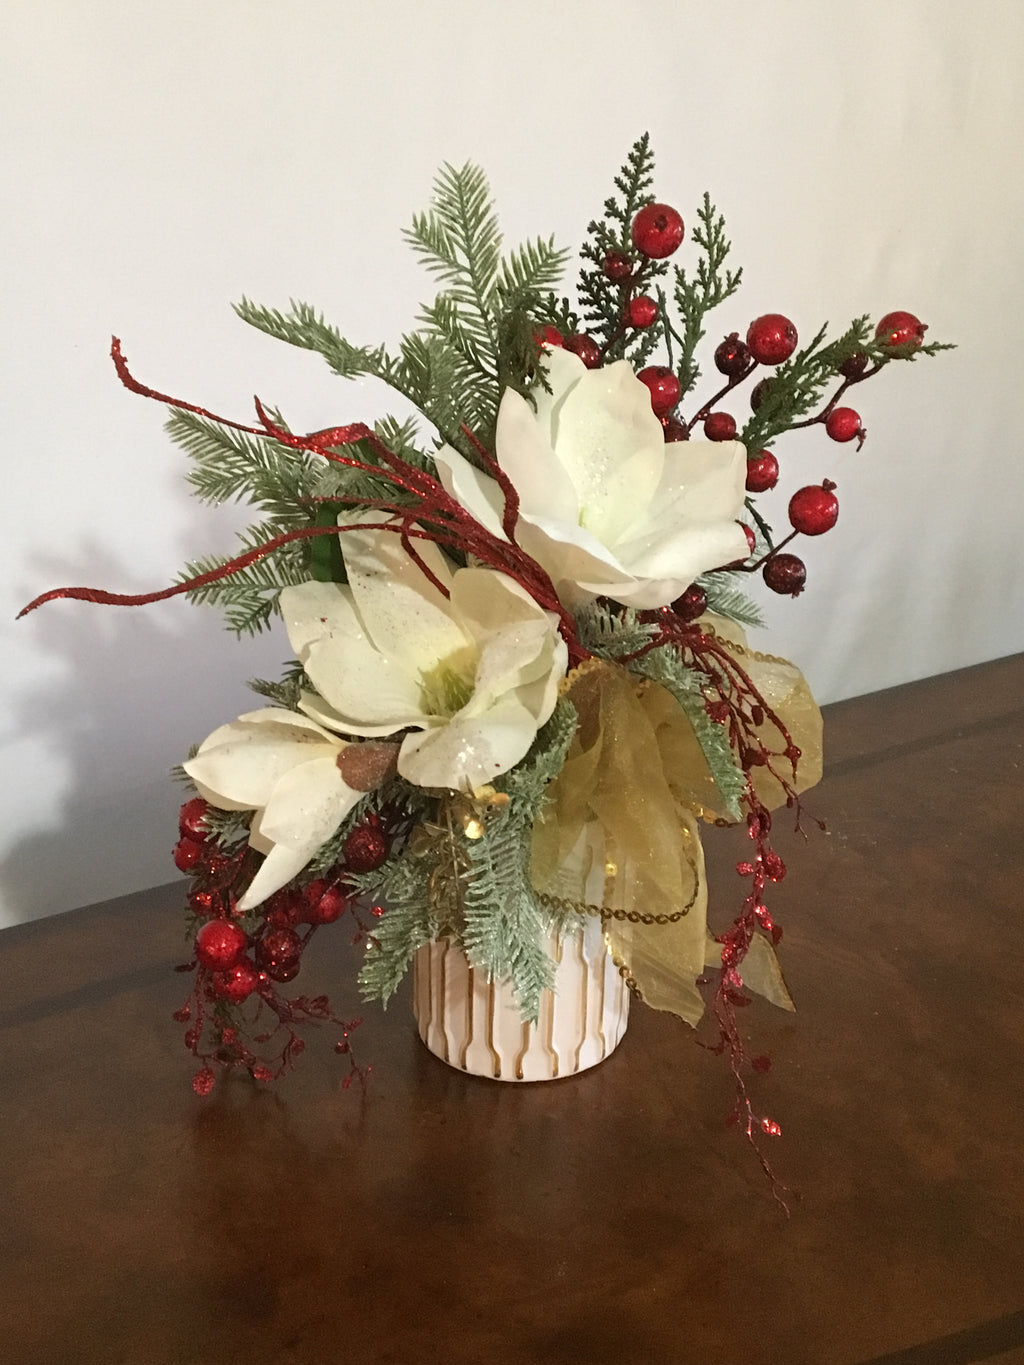 "Lady Mag product image features frosted and glittered magnolias, red berries, mixed pines branches, sheer gold ribbon, white and gold laced modern vase.  Measurements are 14'H x12"" W.  Ideal as a hostess gift, housewarming gift, gift for mom, Christmas gift for sister, Christmas gift for female boss."